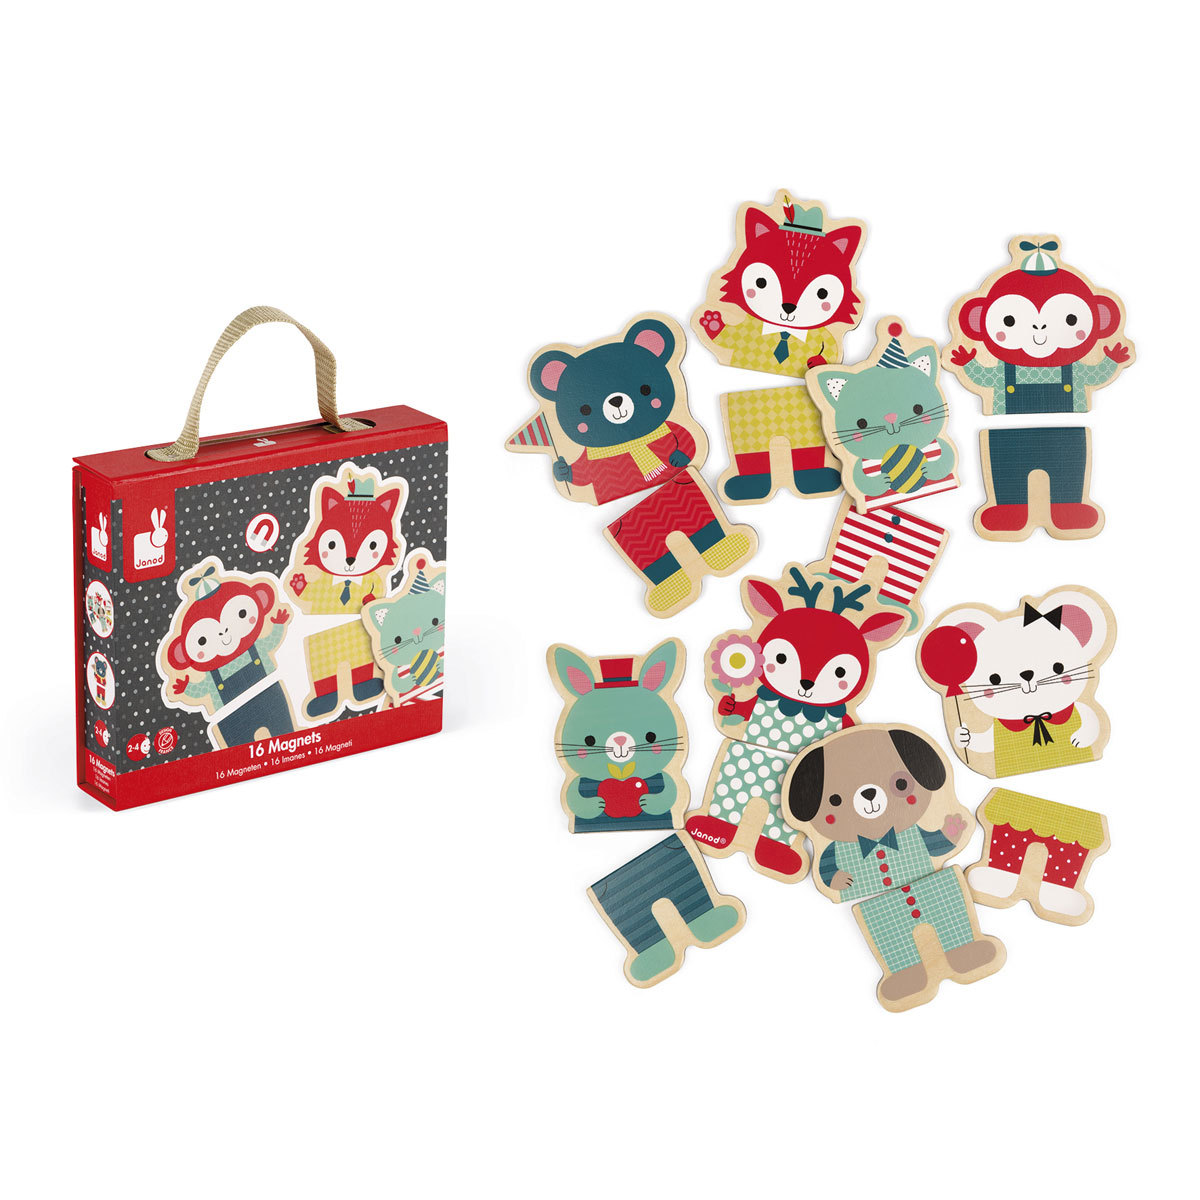 Mes premiers jouets Baby Forest - 16 Magnets Baby Forest - 16 Magnets